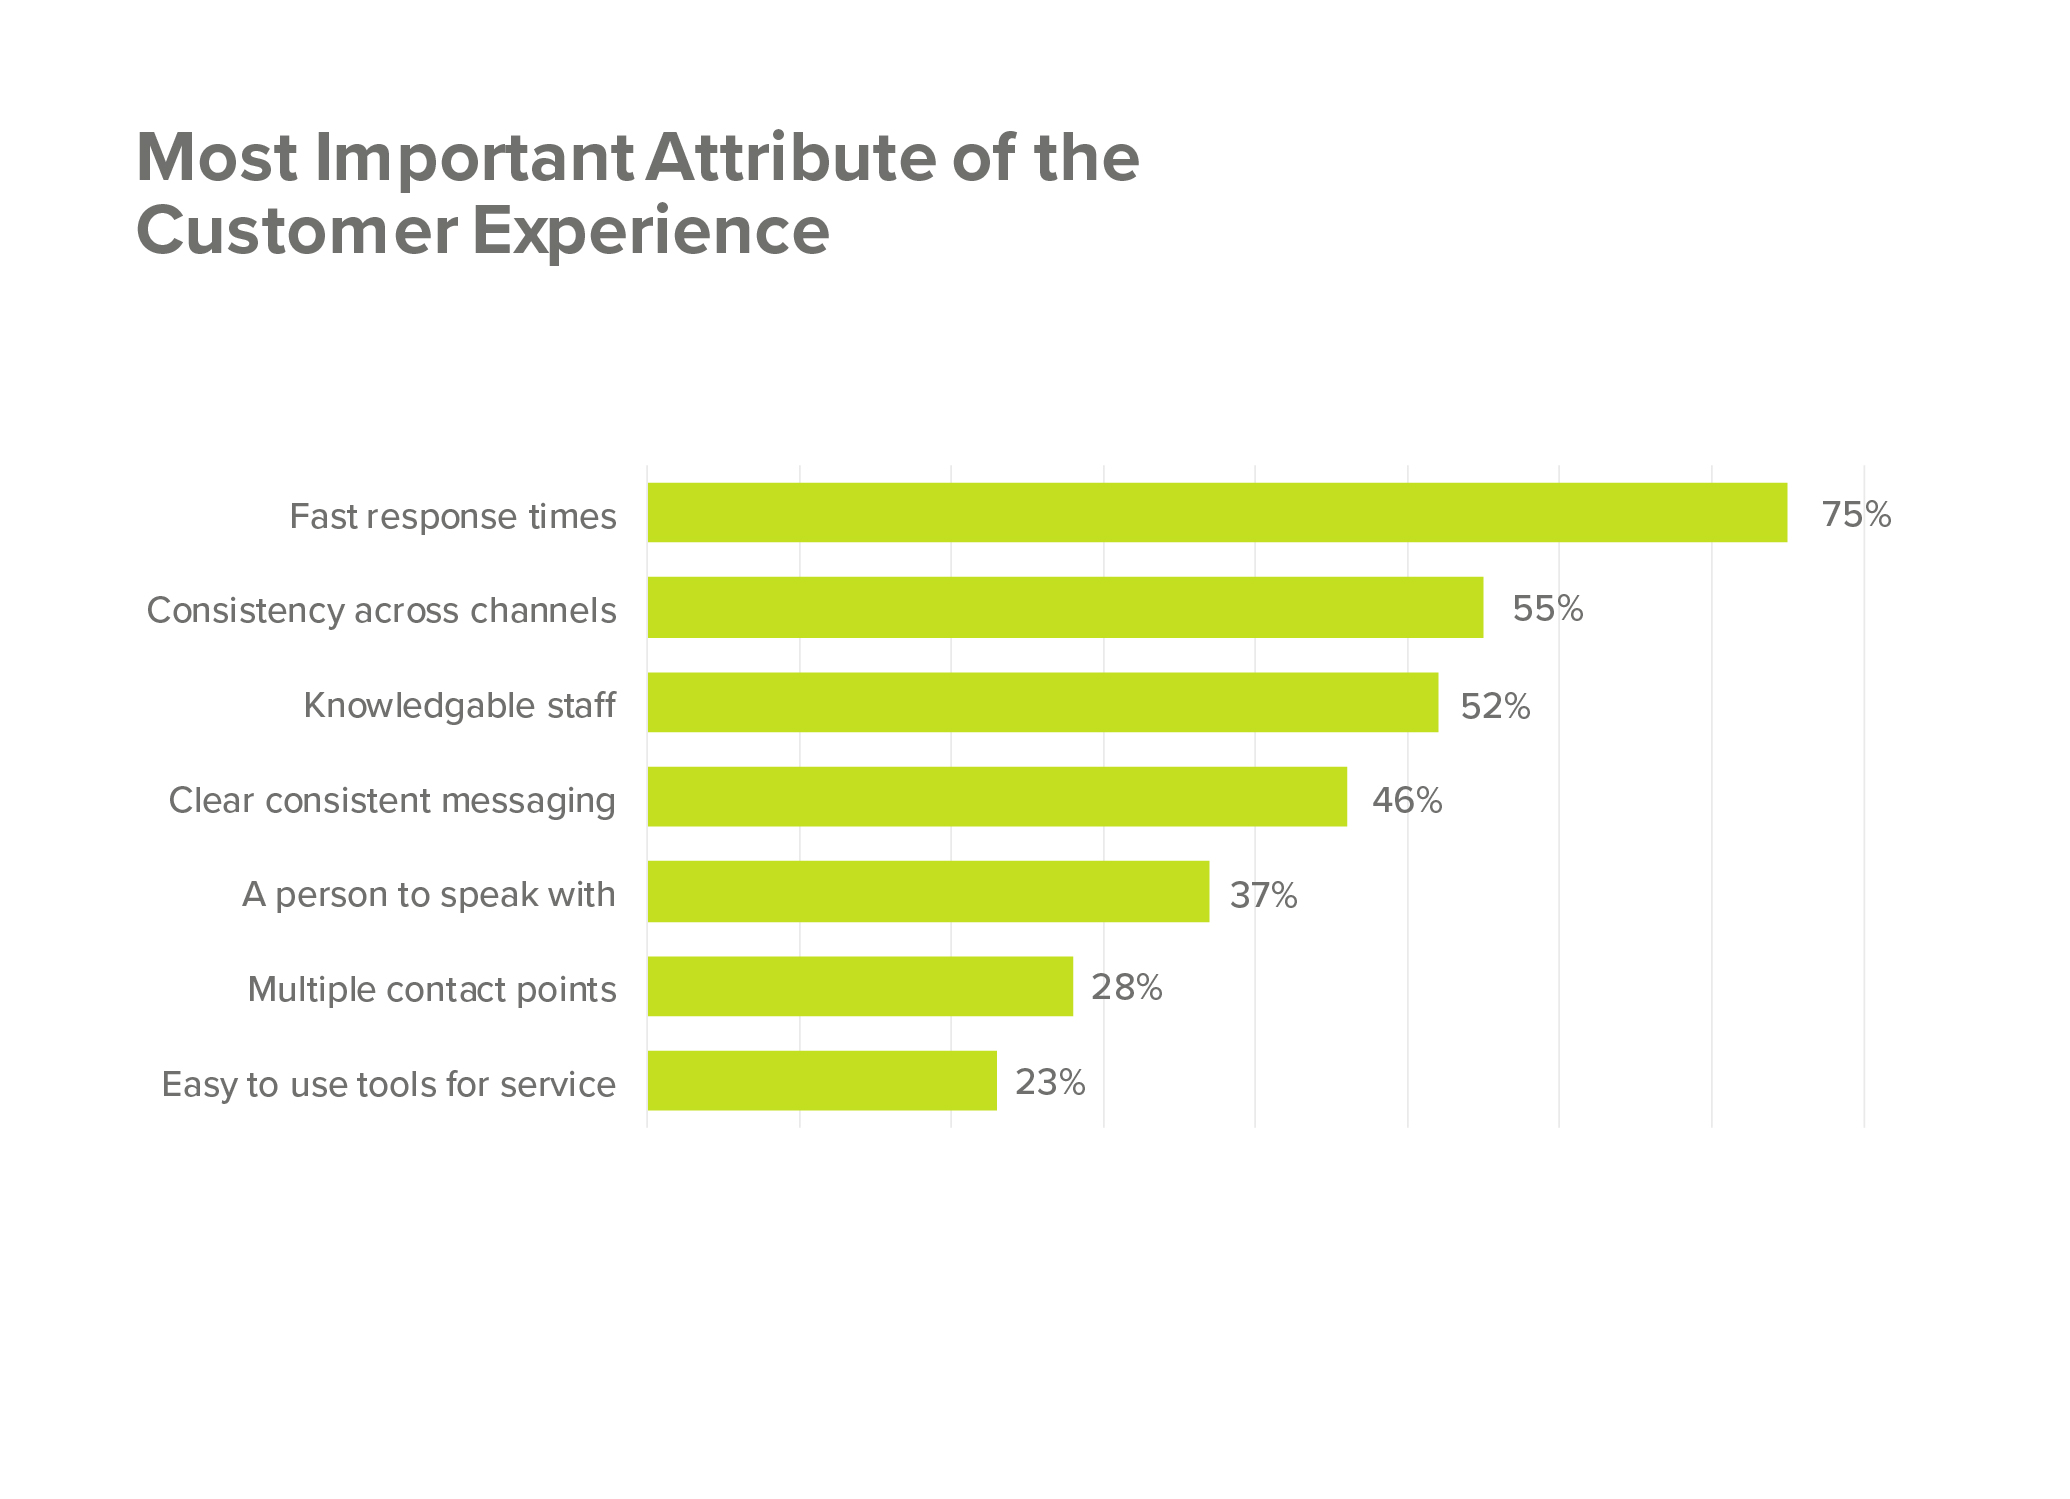 Most important attributes in Customer Experience